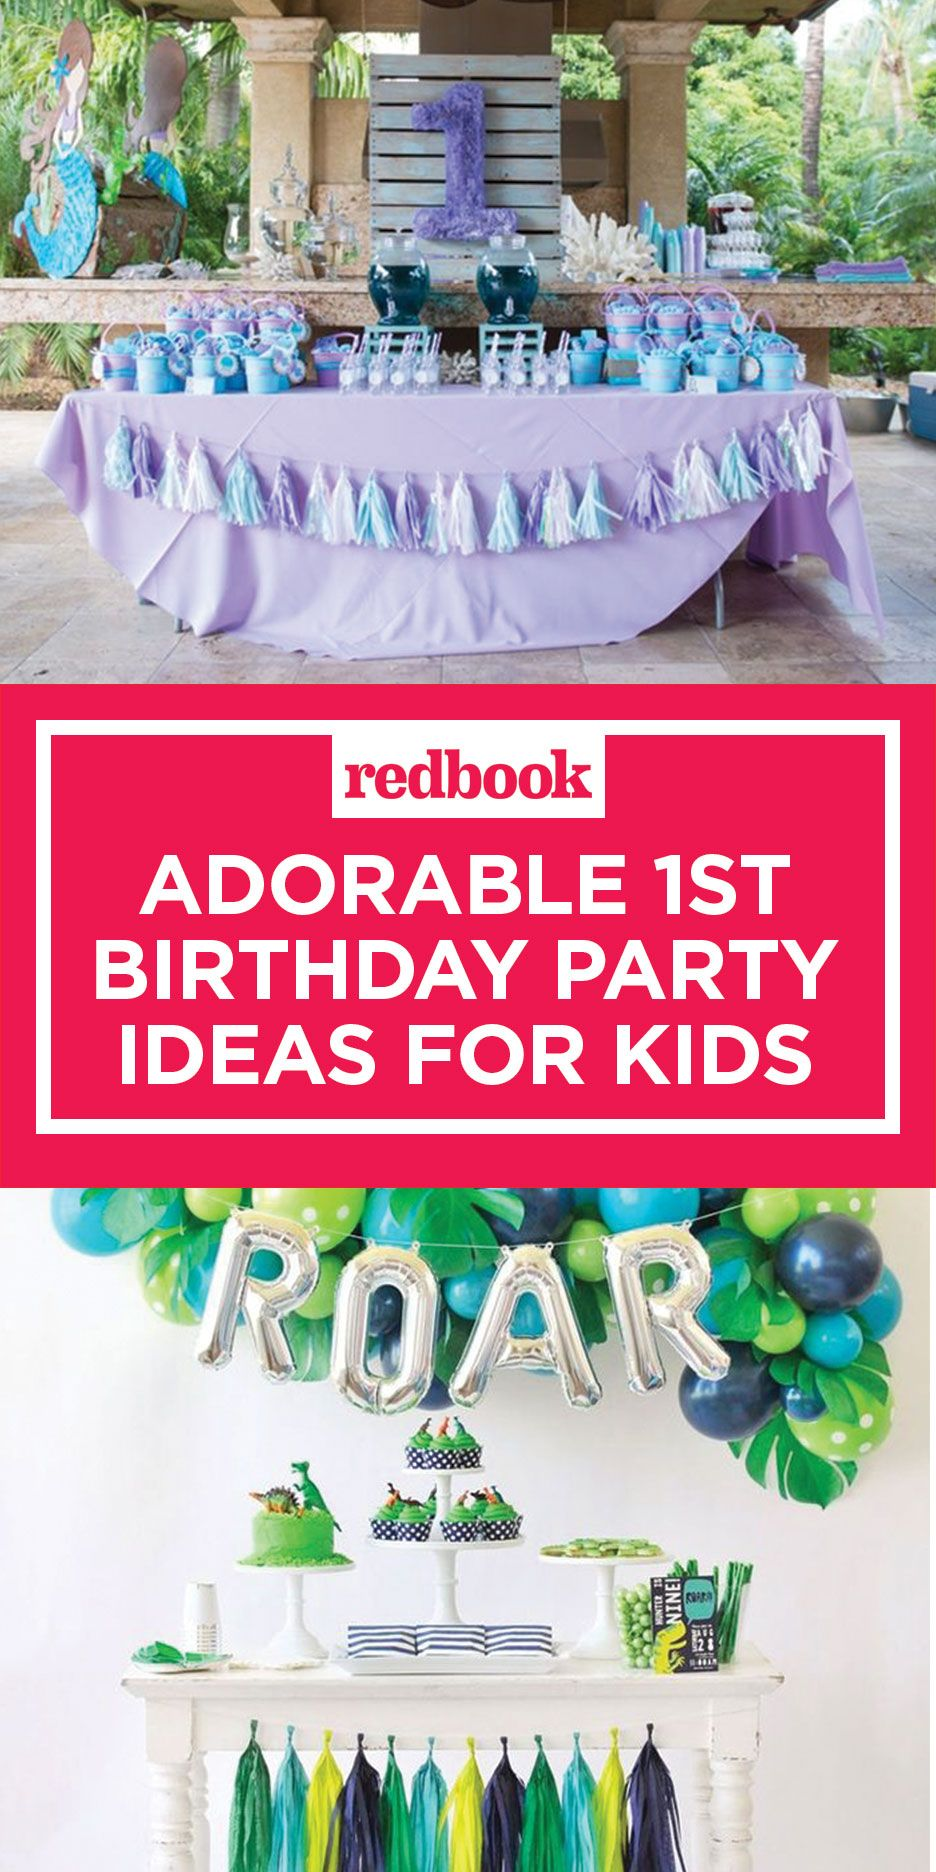 1st Birthday Party Ideas For Kids